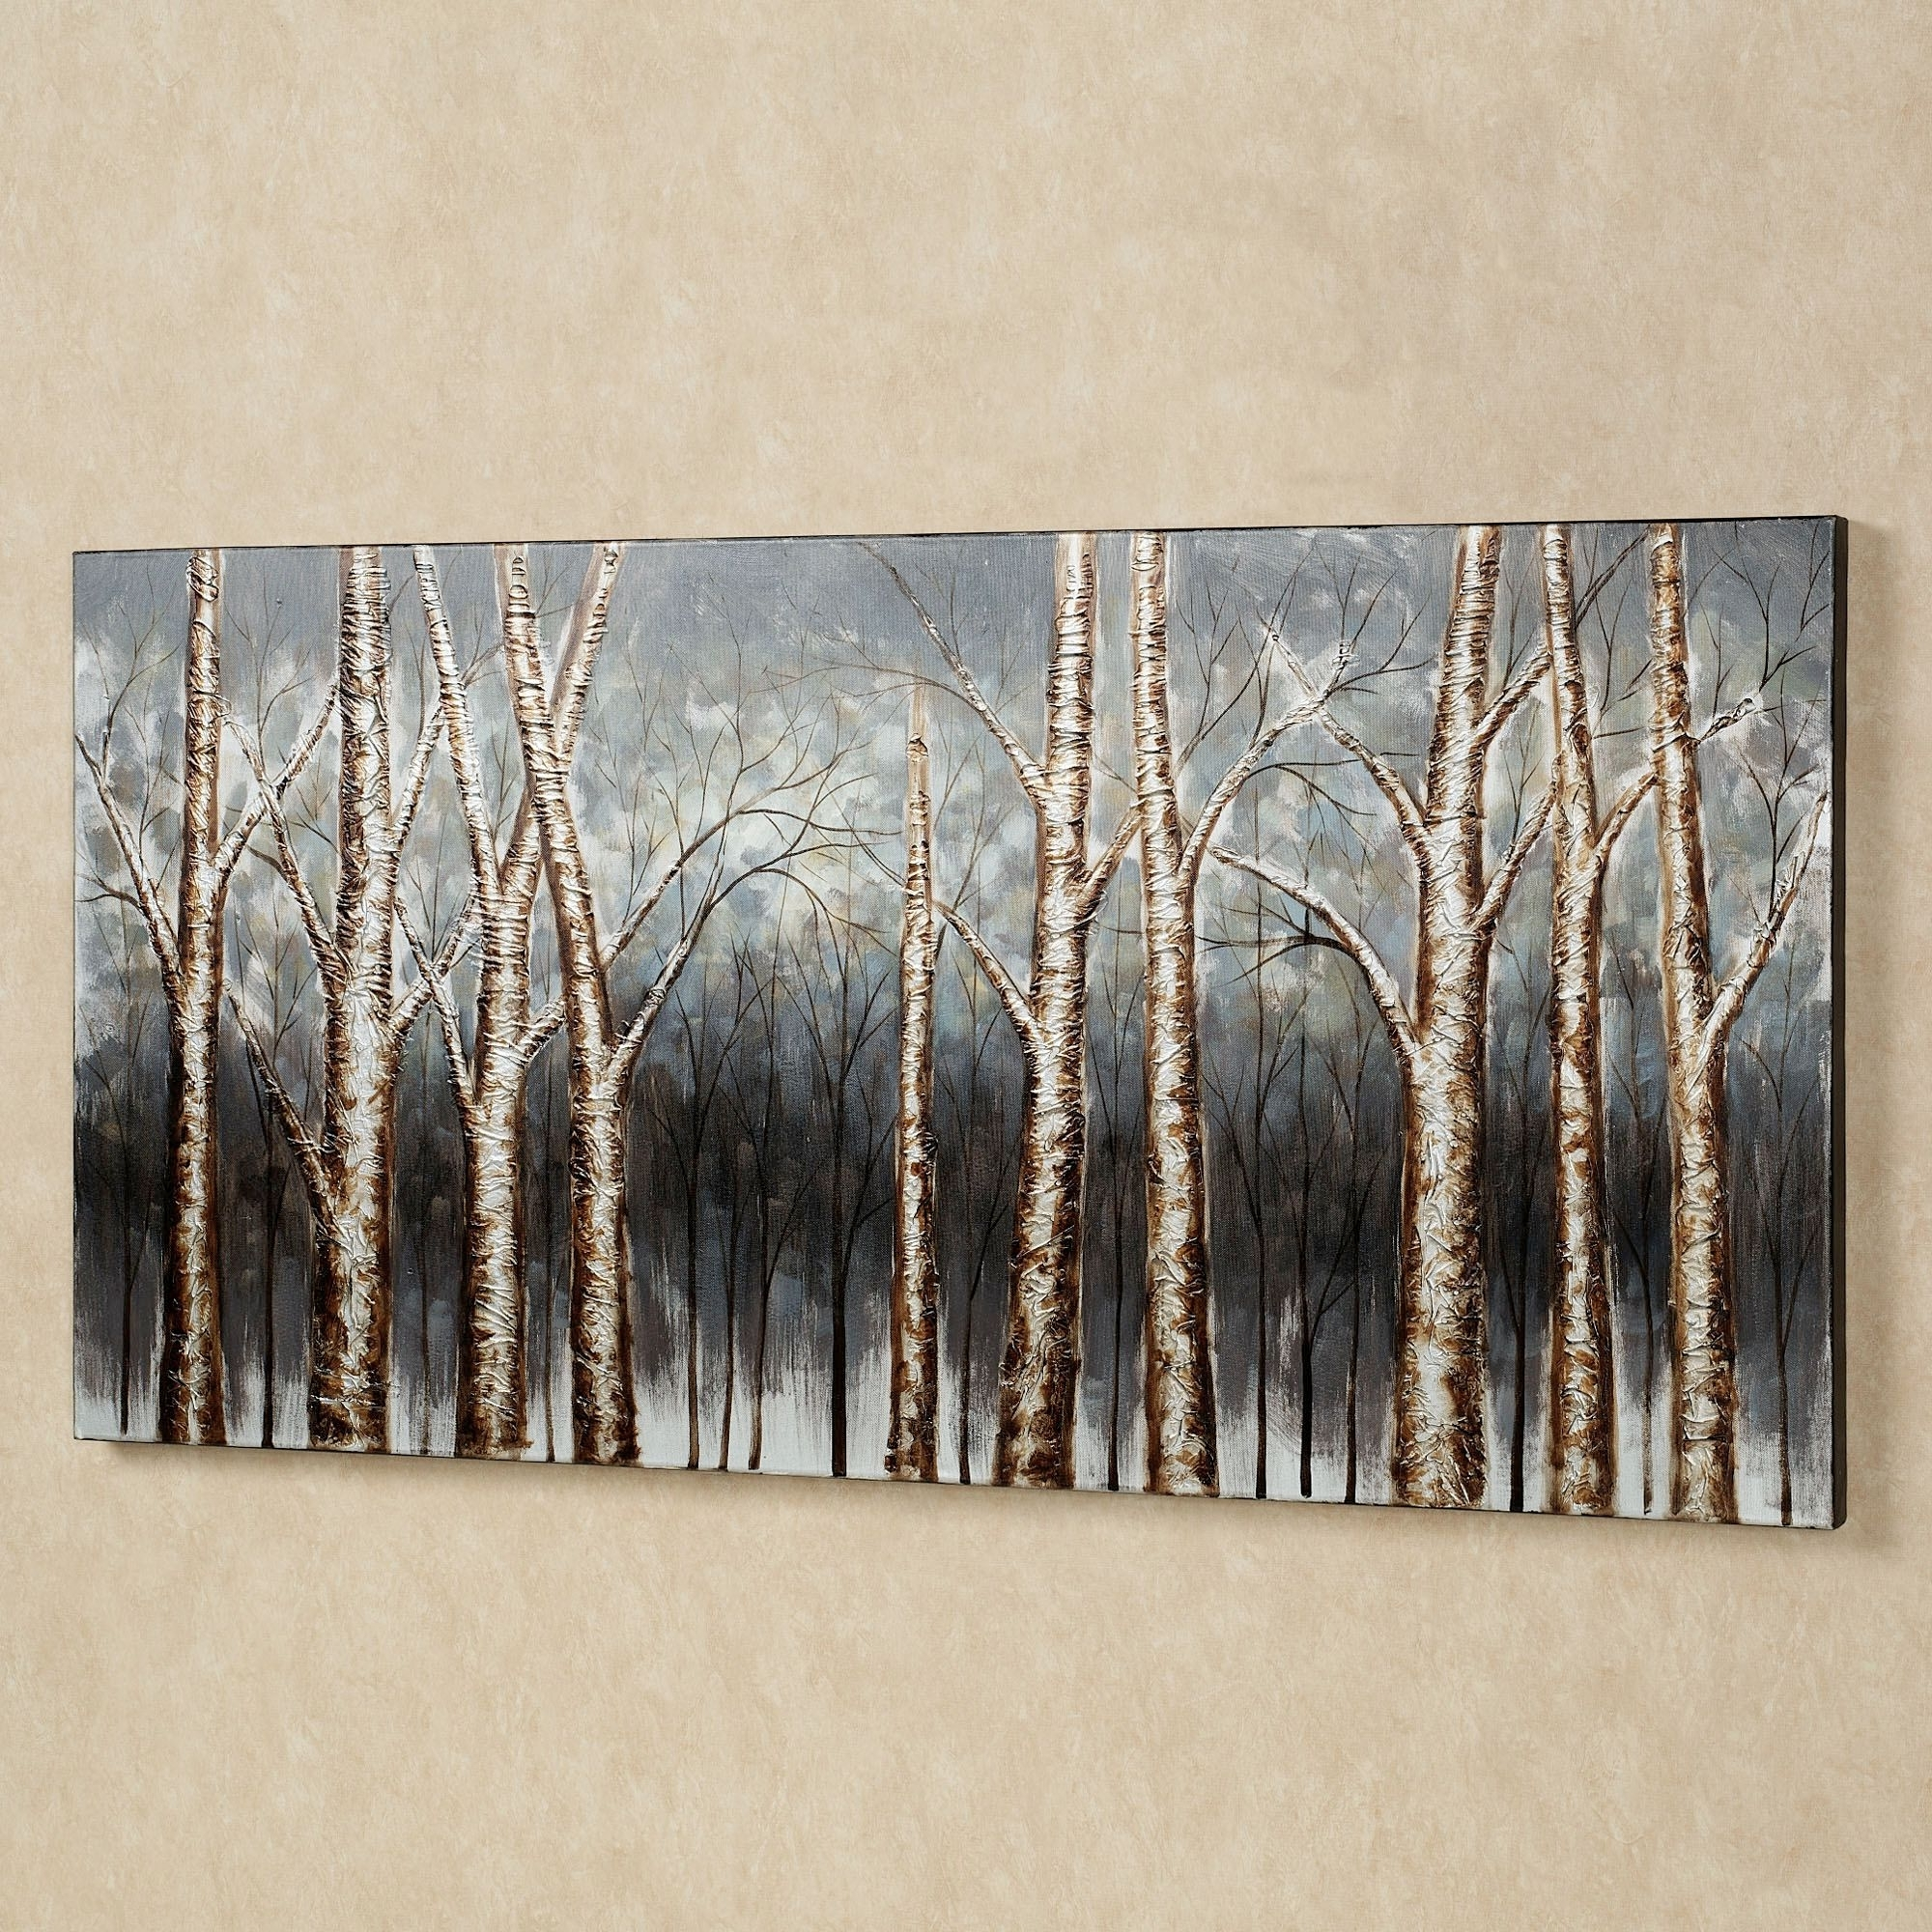 Cream Metal Wall Art For Popular Wall Art Decor: Cream Wallpaper Aspen Trees Wall Art Sample (View 4 of 15)